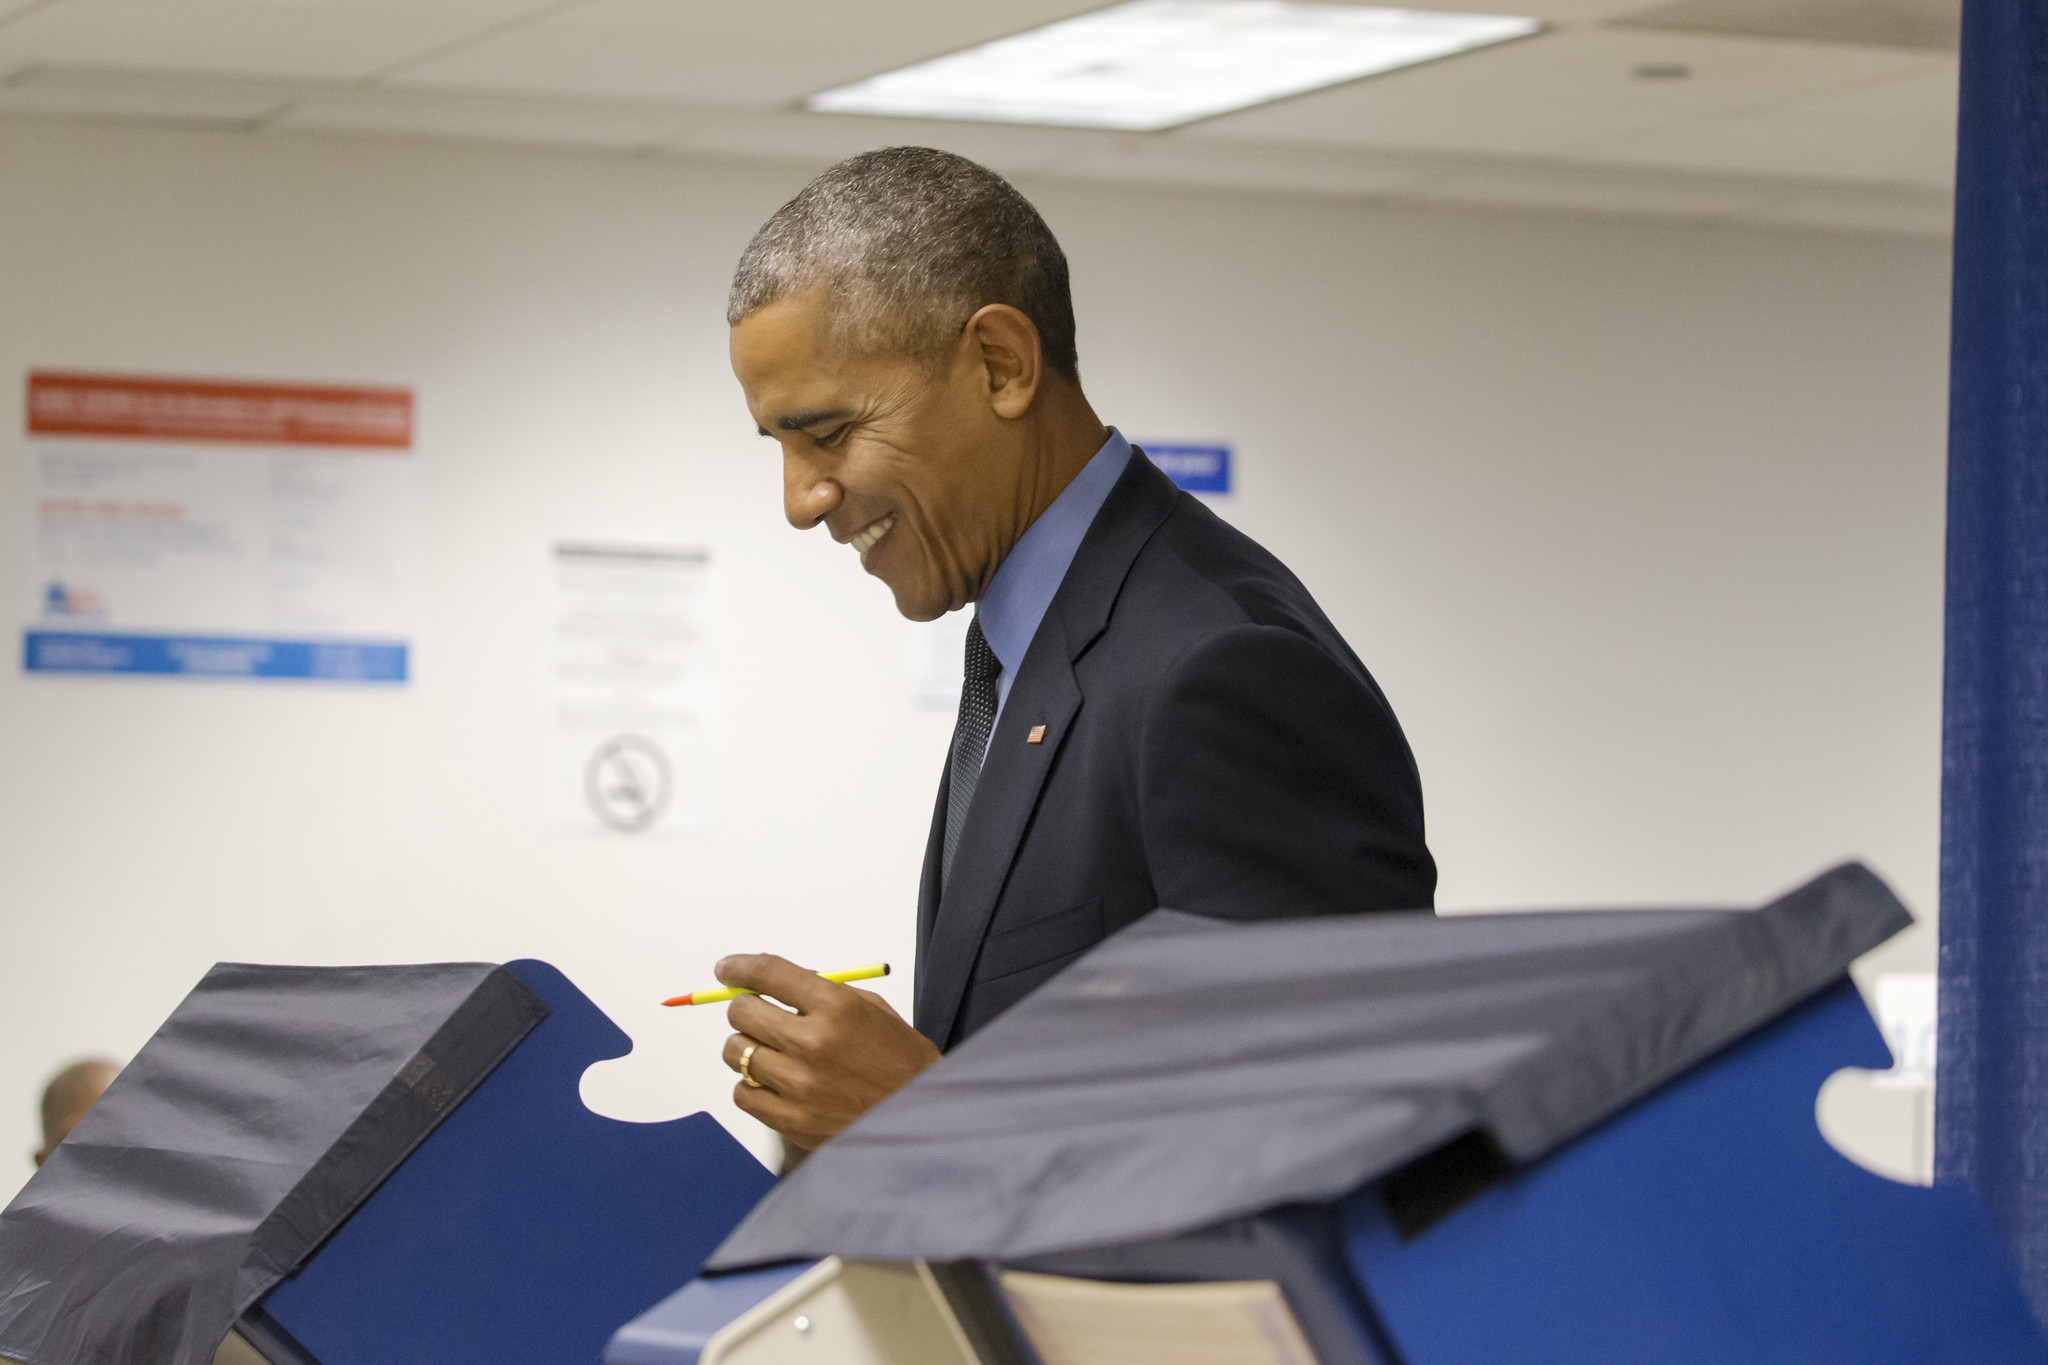 President Obama casts early vote in Chicago between ...